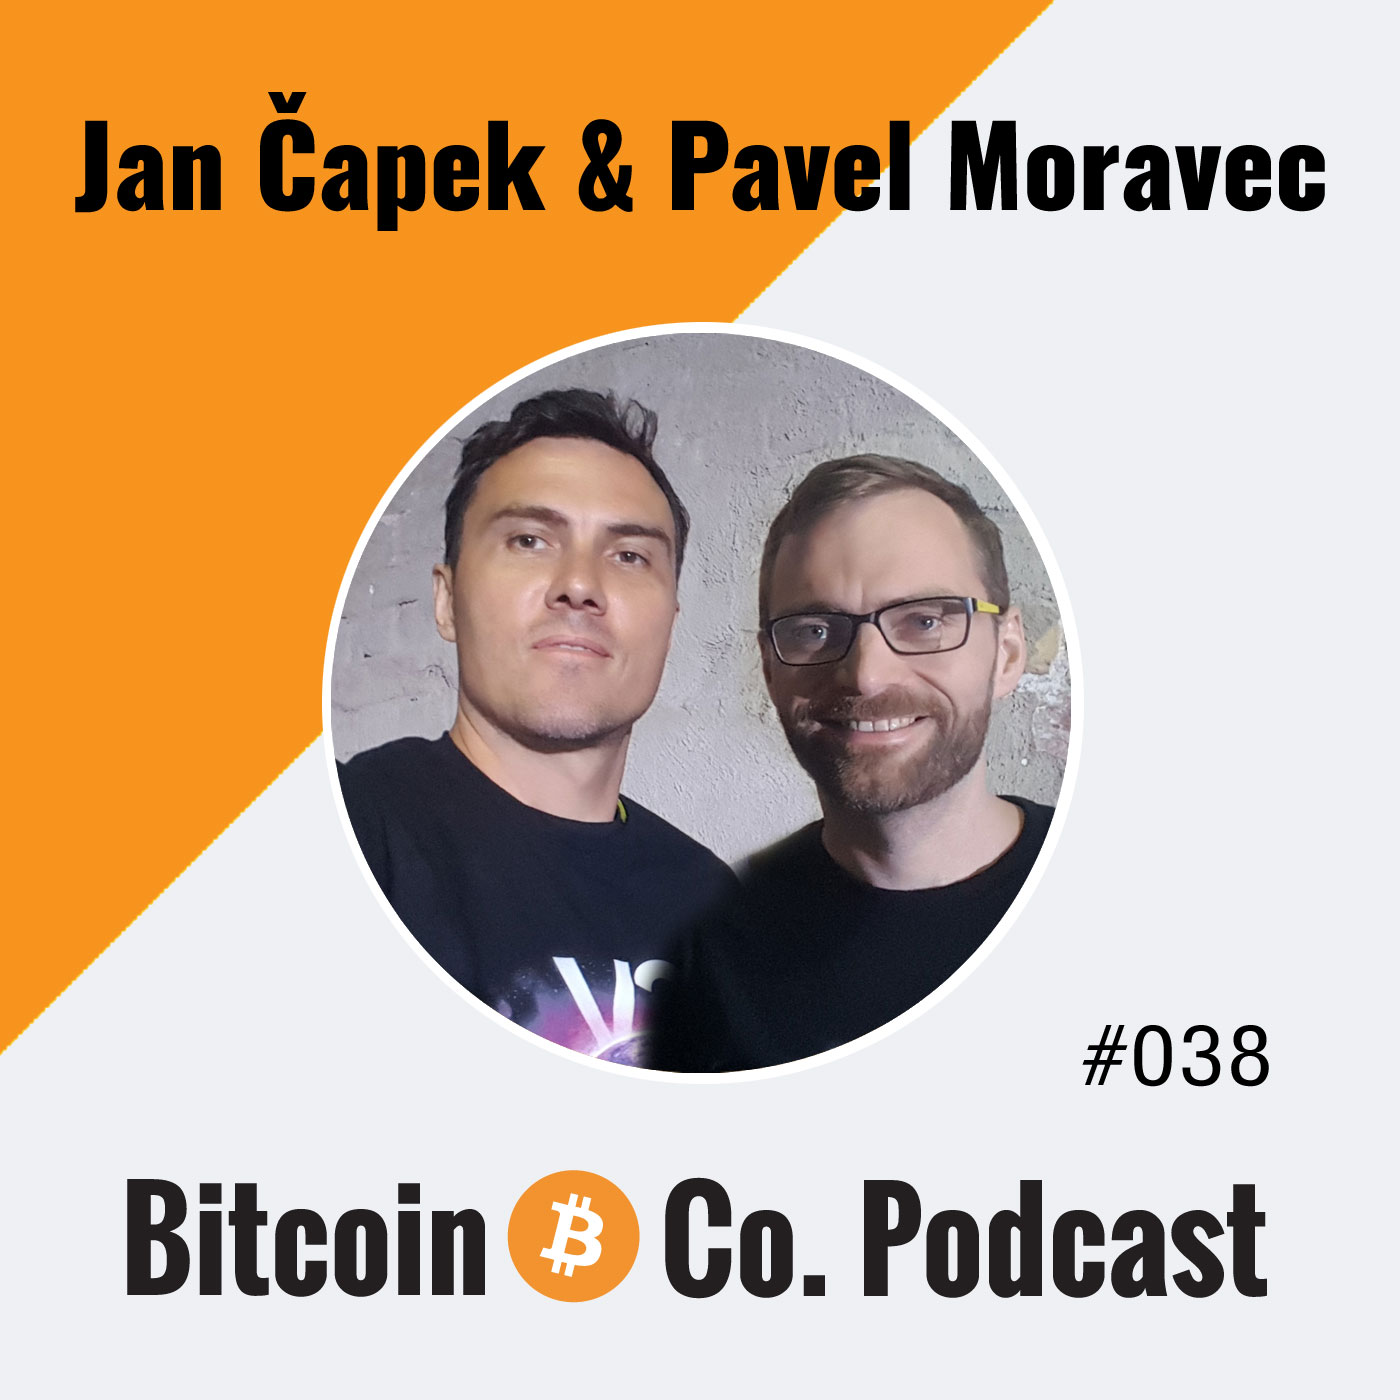 Jan Capek and Pavel Moravec Pool Mining